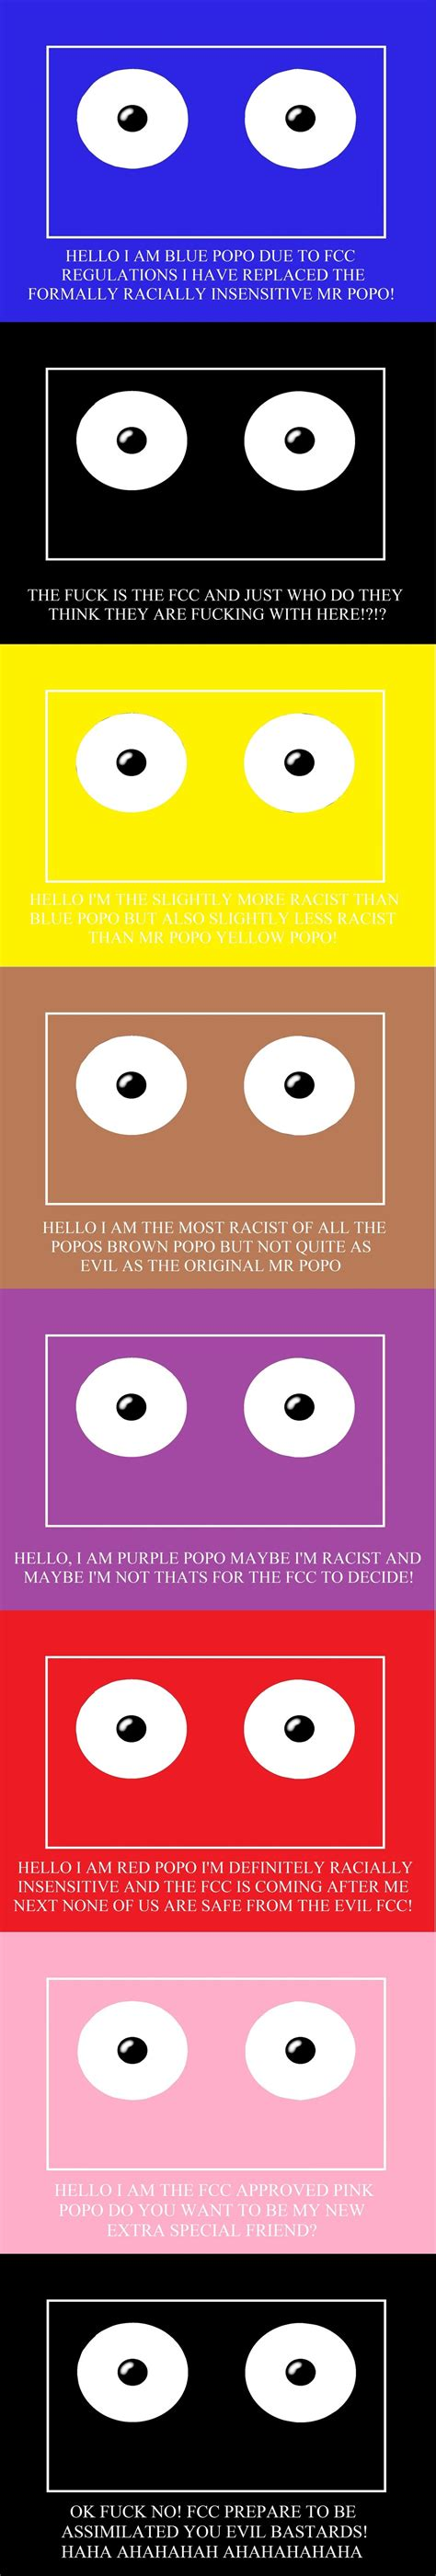 Popo Memes - mr popo demotivational meme by thesalsaman on deviantart